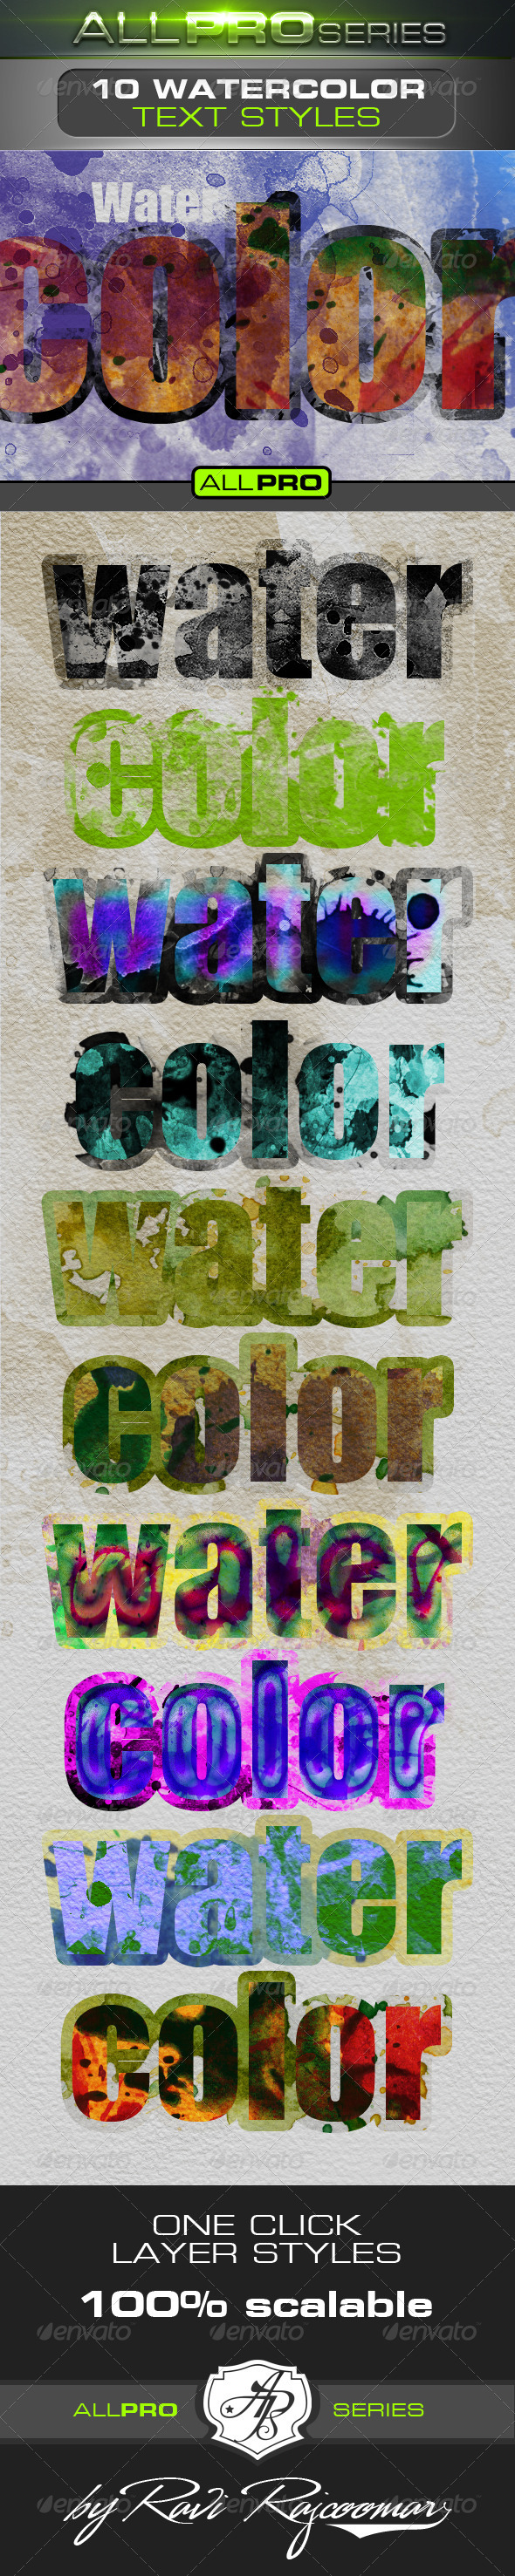 GraphicRiver Watercolor Photoshop Text Styles 4713130